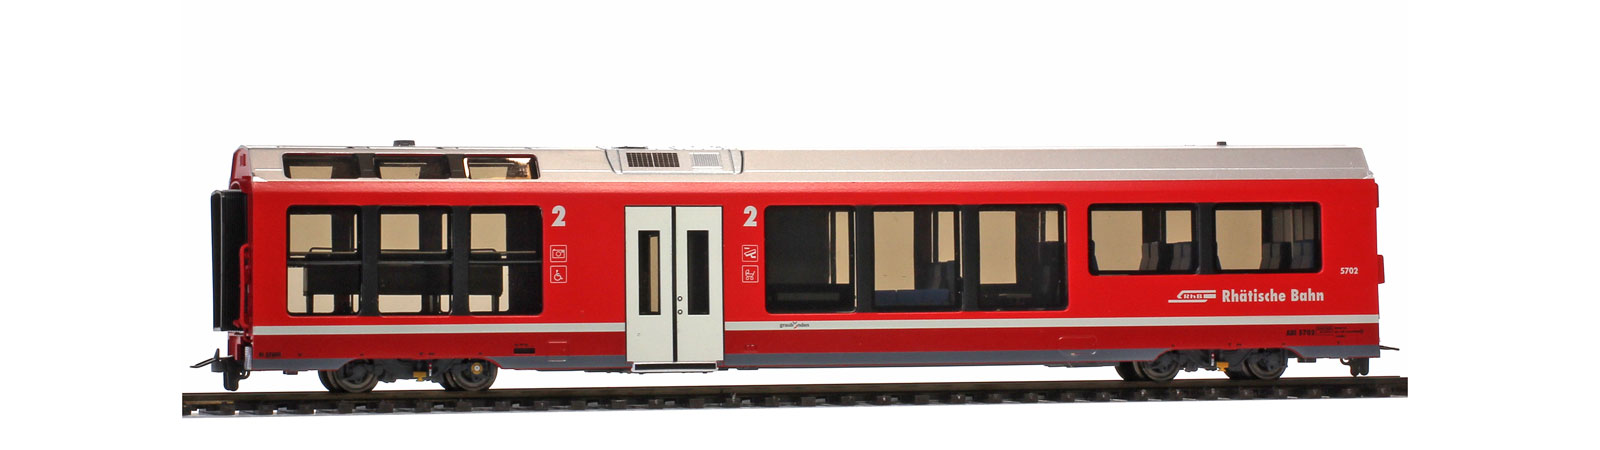 Bemo 3298 162 RhB Bi 576 01 AGZ end car